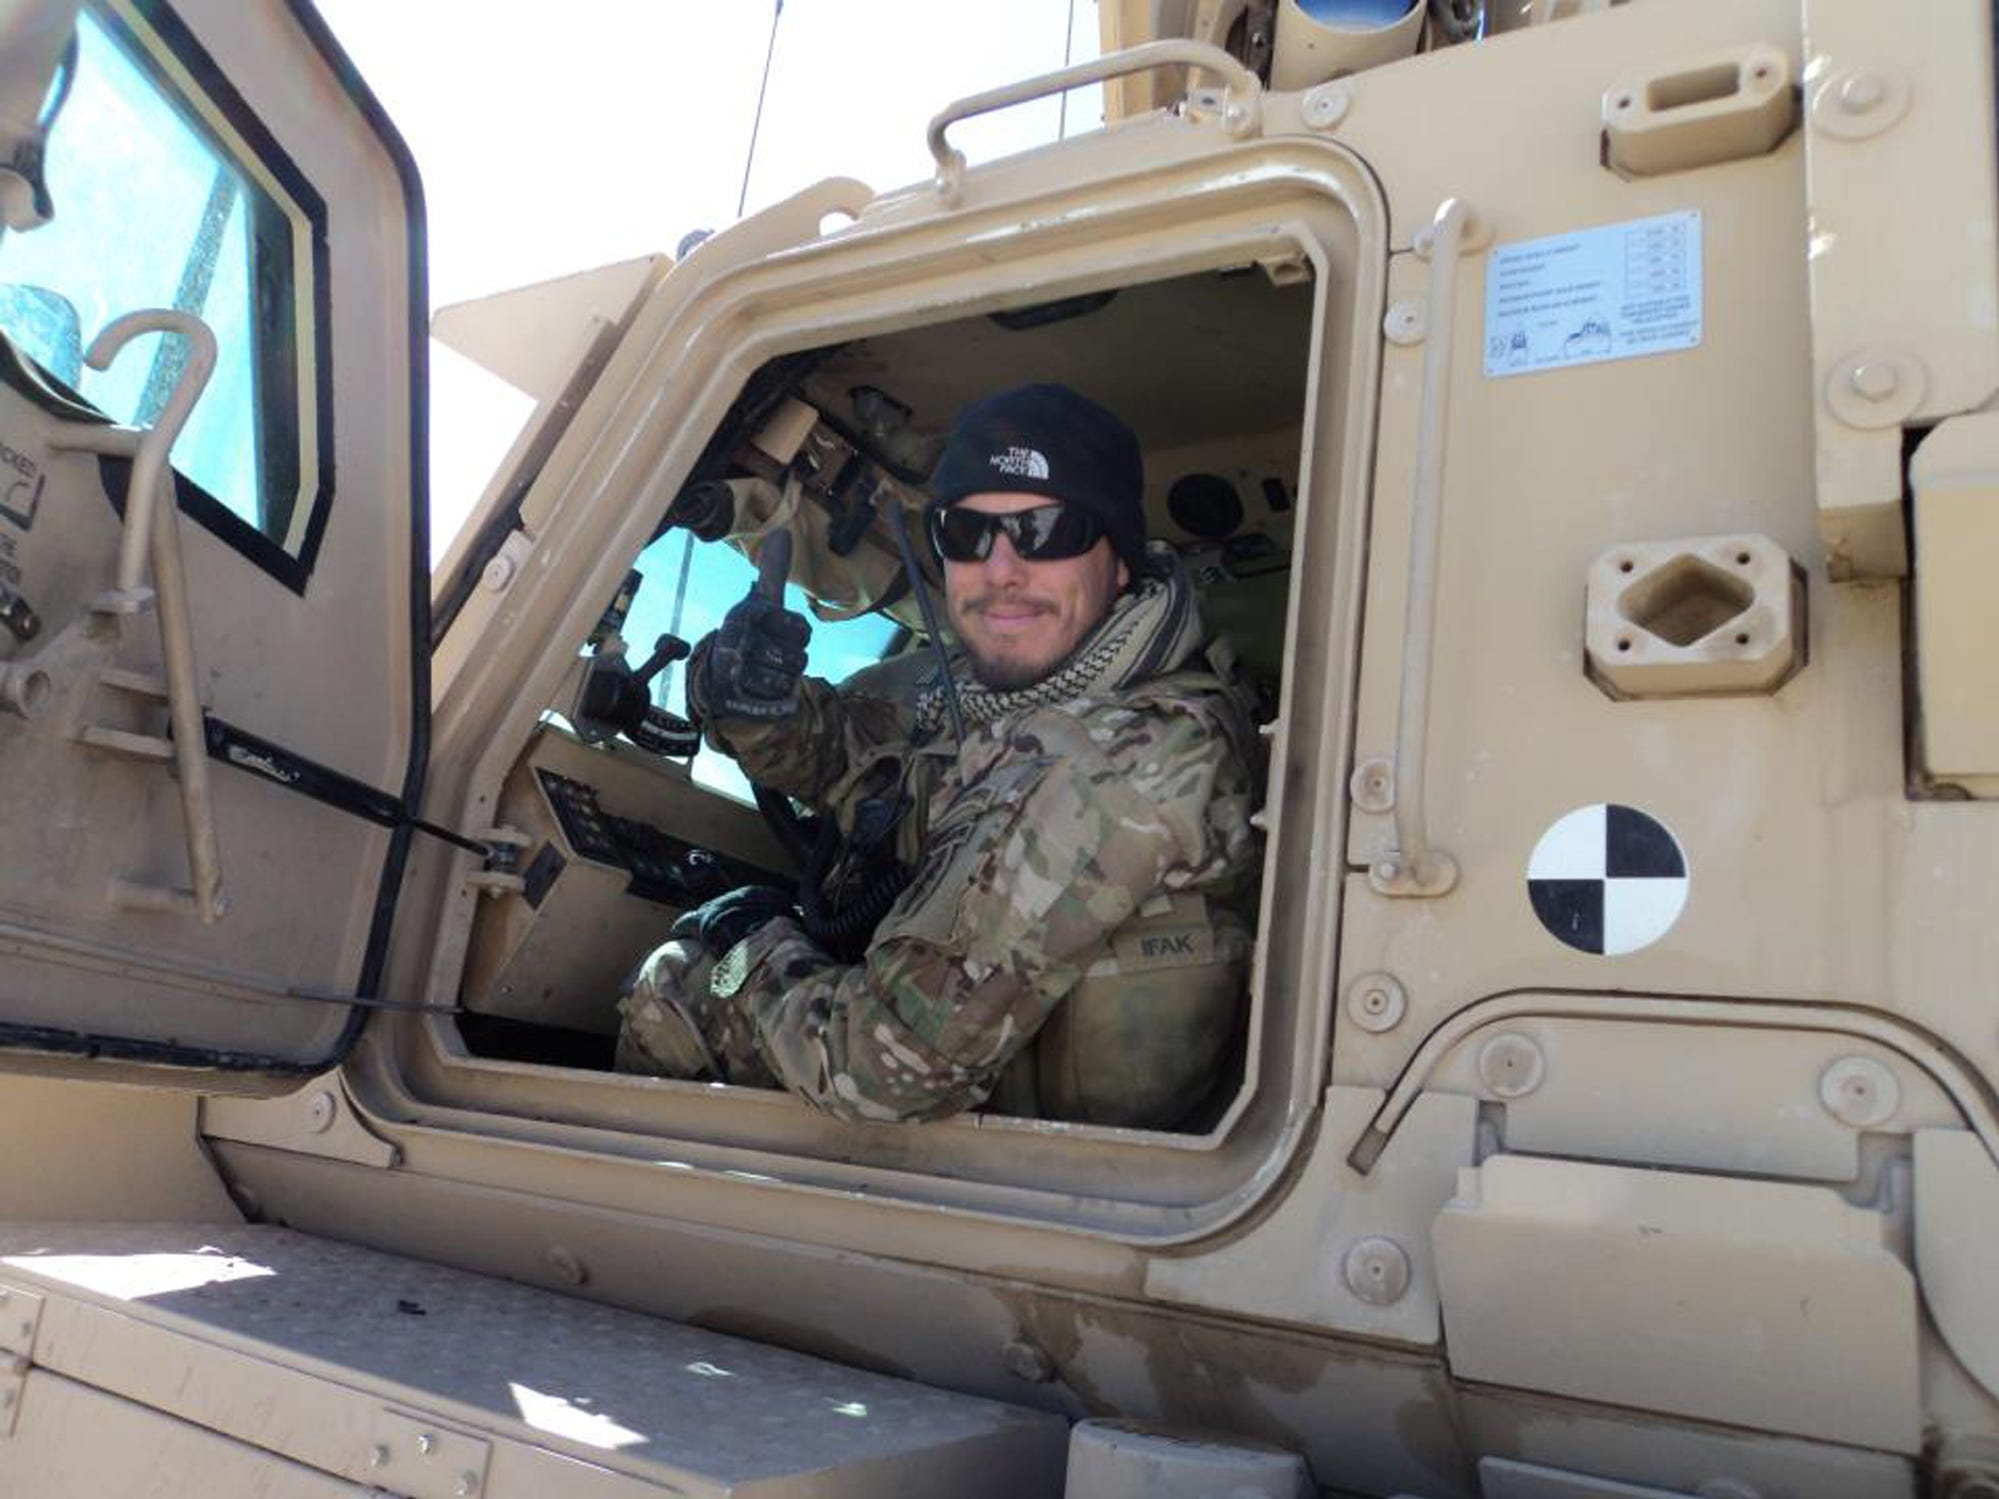 Army Staff Sgt. Brandon Pepper, 31, formerly of Spring Garden Township, was killed July 21, 2012 in an insurgent attack while on patrol in Ghazni province, Afghanistan.